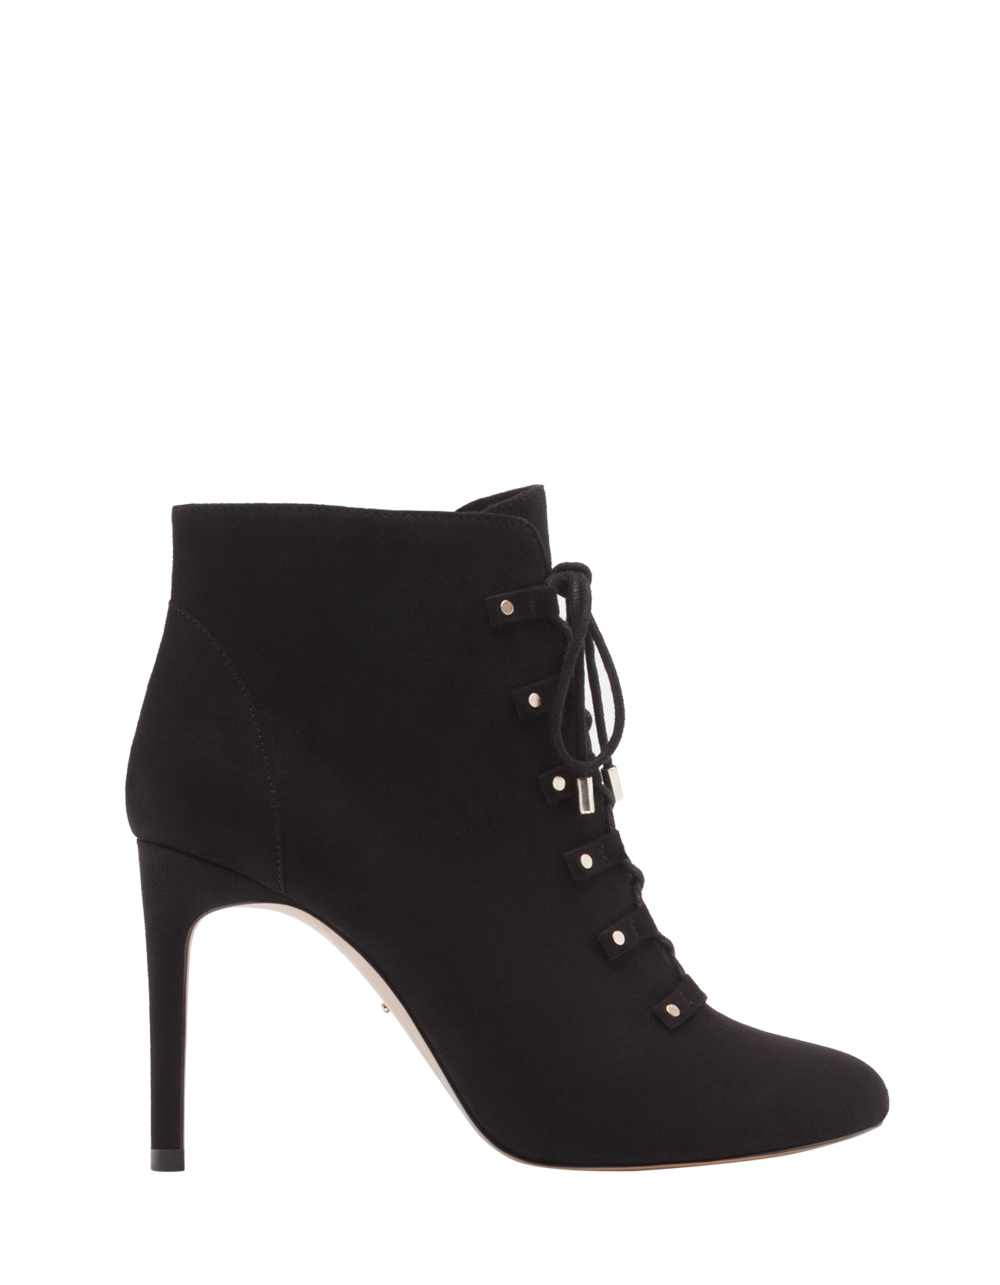 Stradivarius_fw15_shoes (4).png